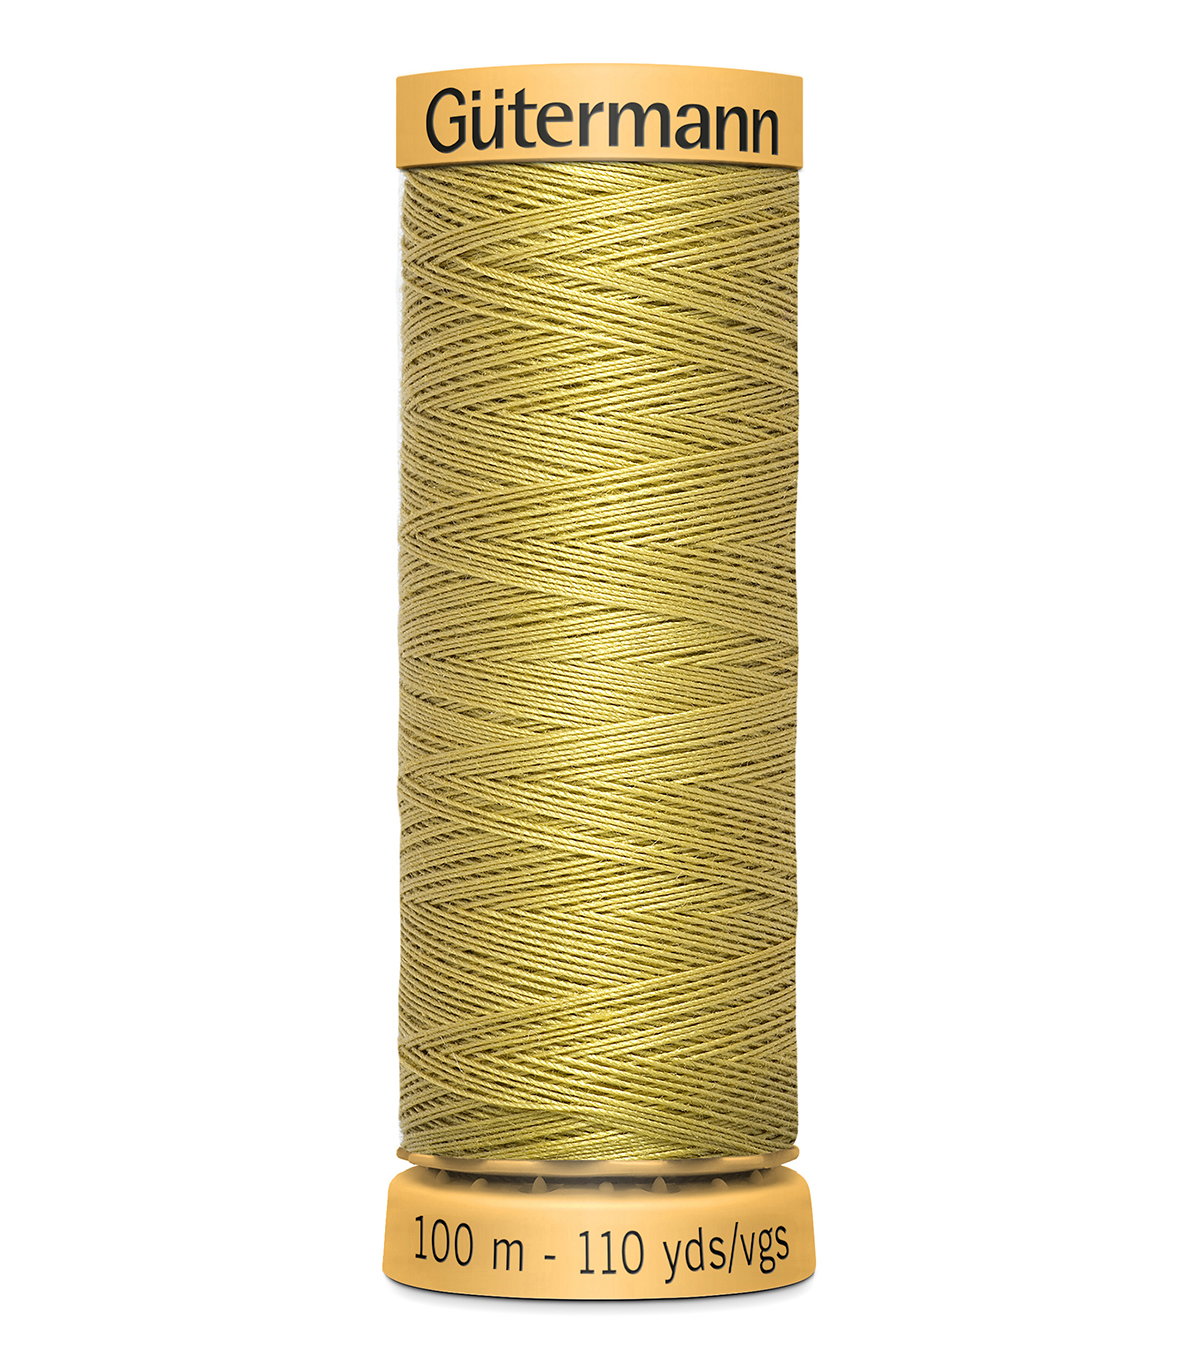 Gutermann Sew All Polyester Thread 110 Yards-Oranges & Yellows , Golden Wheat